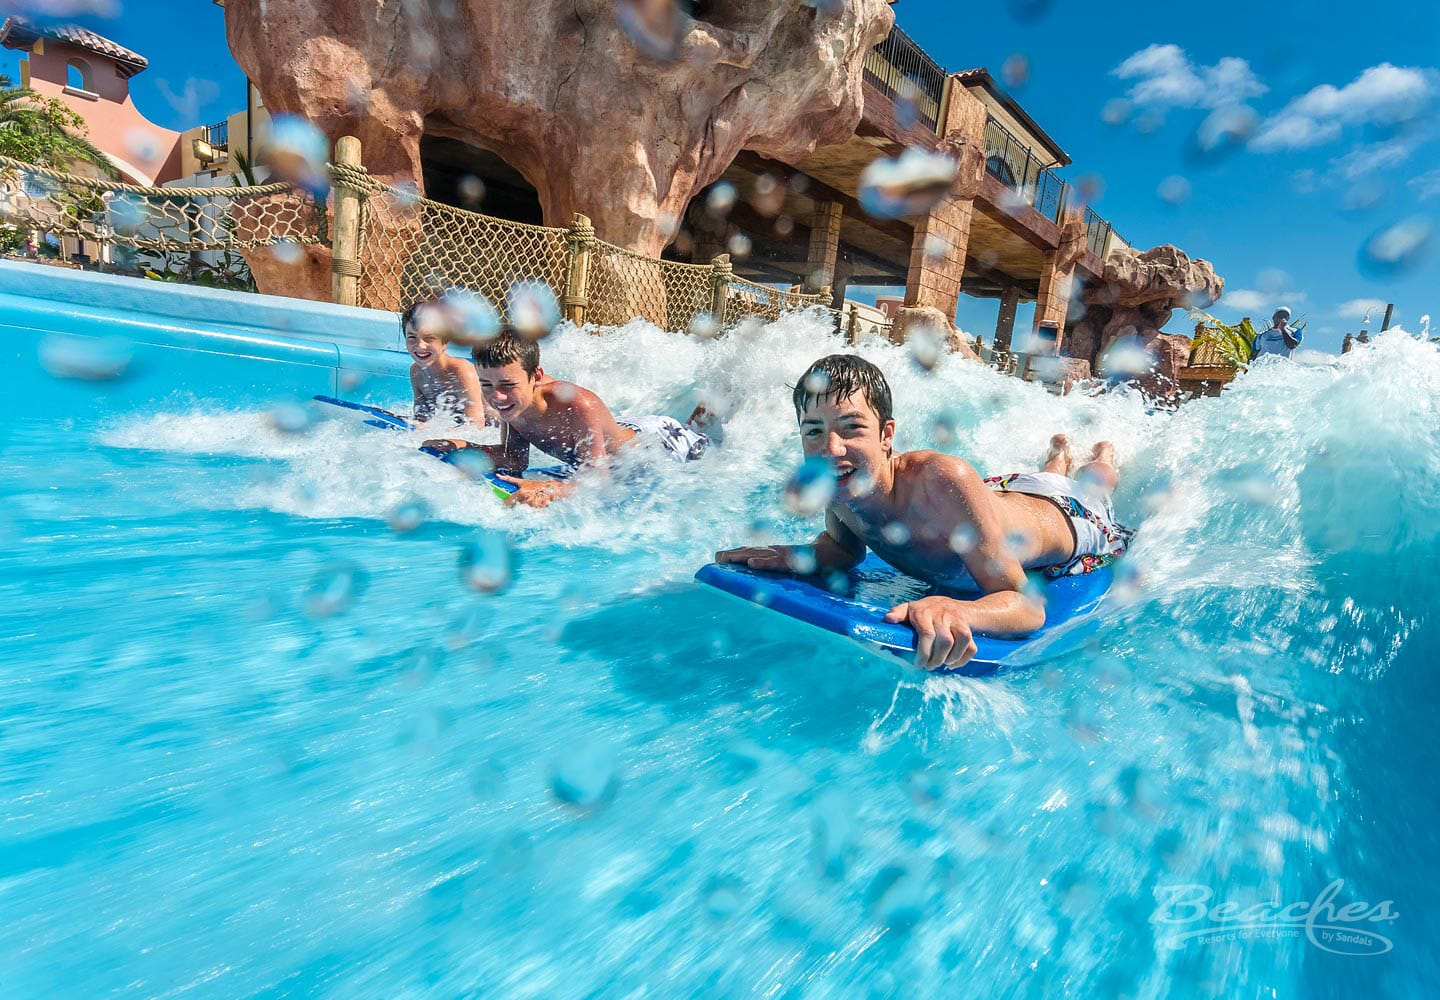 kids on their surf boards coming down a water slide at the Beaches Turks and Caicos resort, Beaches vacation deals